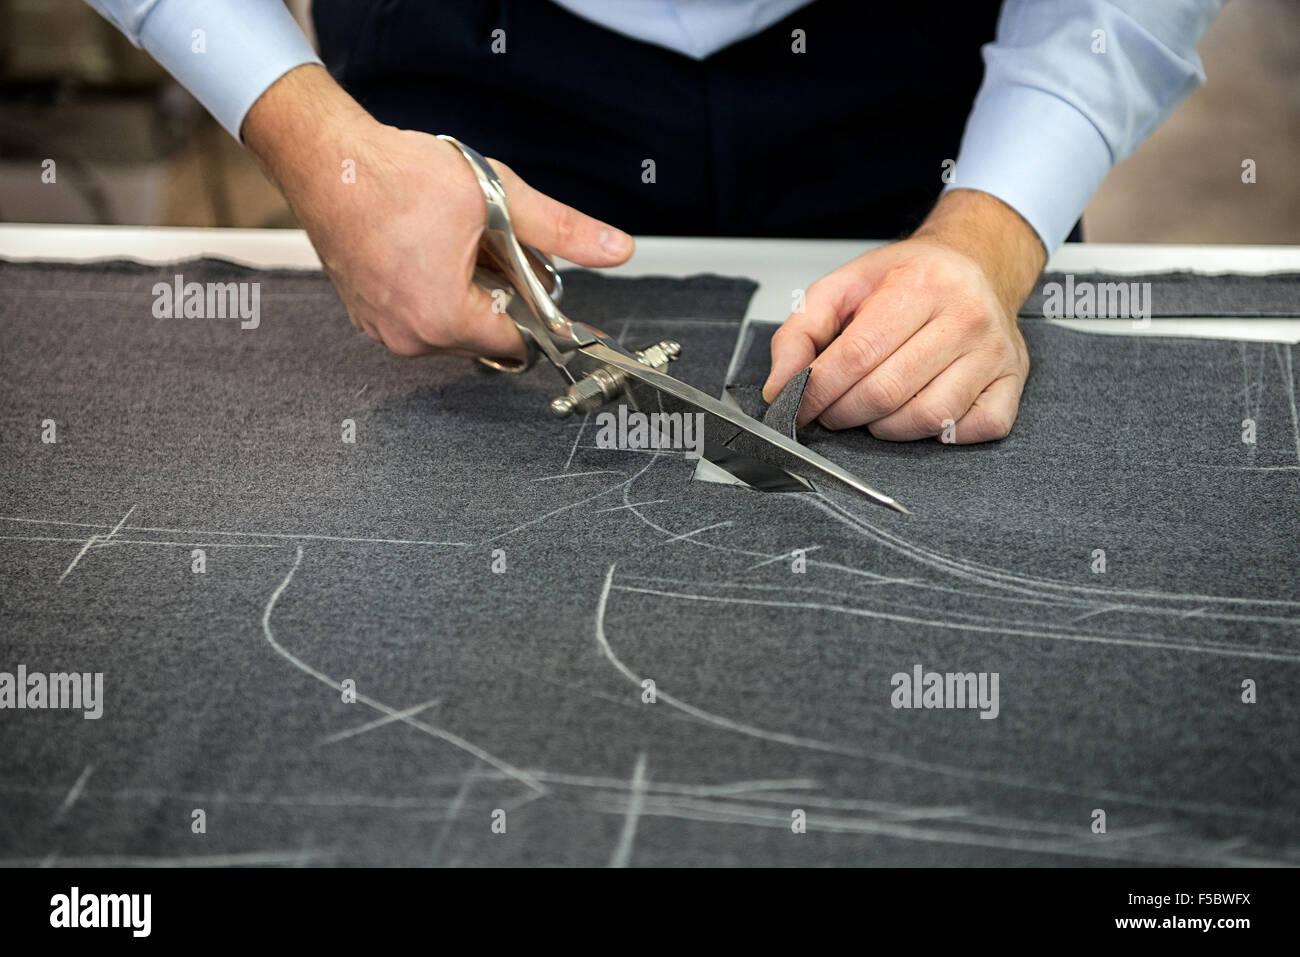 Tailor cutting fabric using large scissors or shears - Stock Image